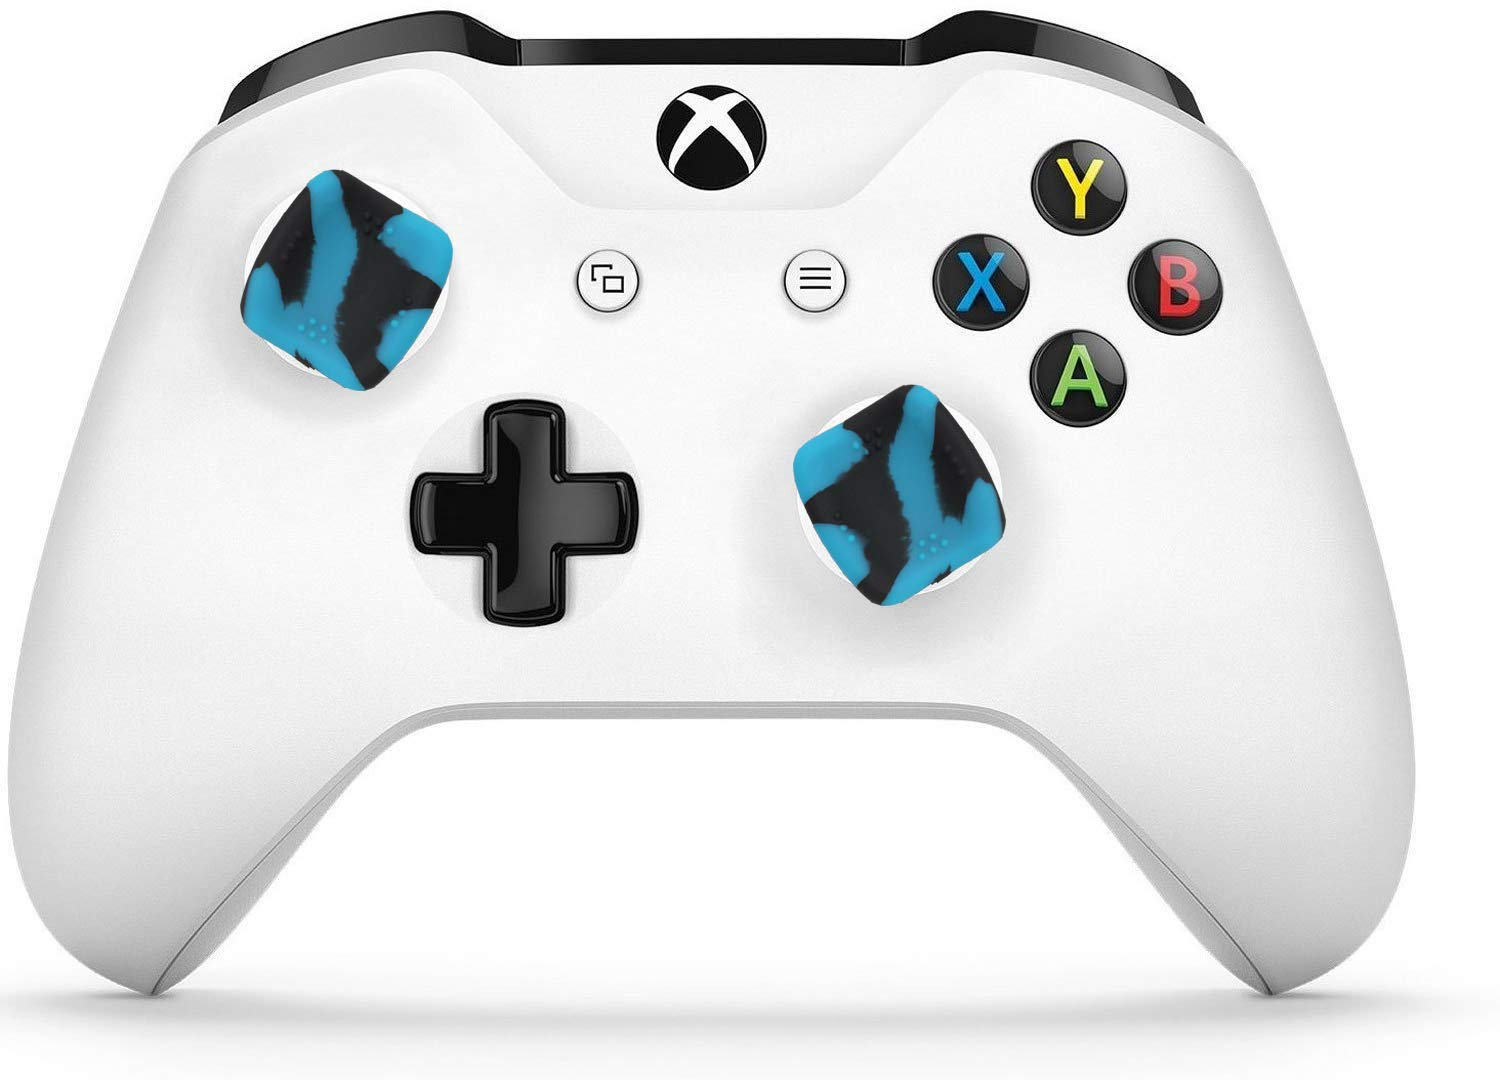 Skywin Performance Thumb Grips Compatible with Xbox One Controller provide effortless griping for Large, Weak, or Arthritic hands - Blue and Black